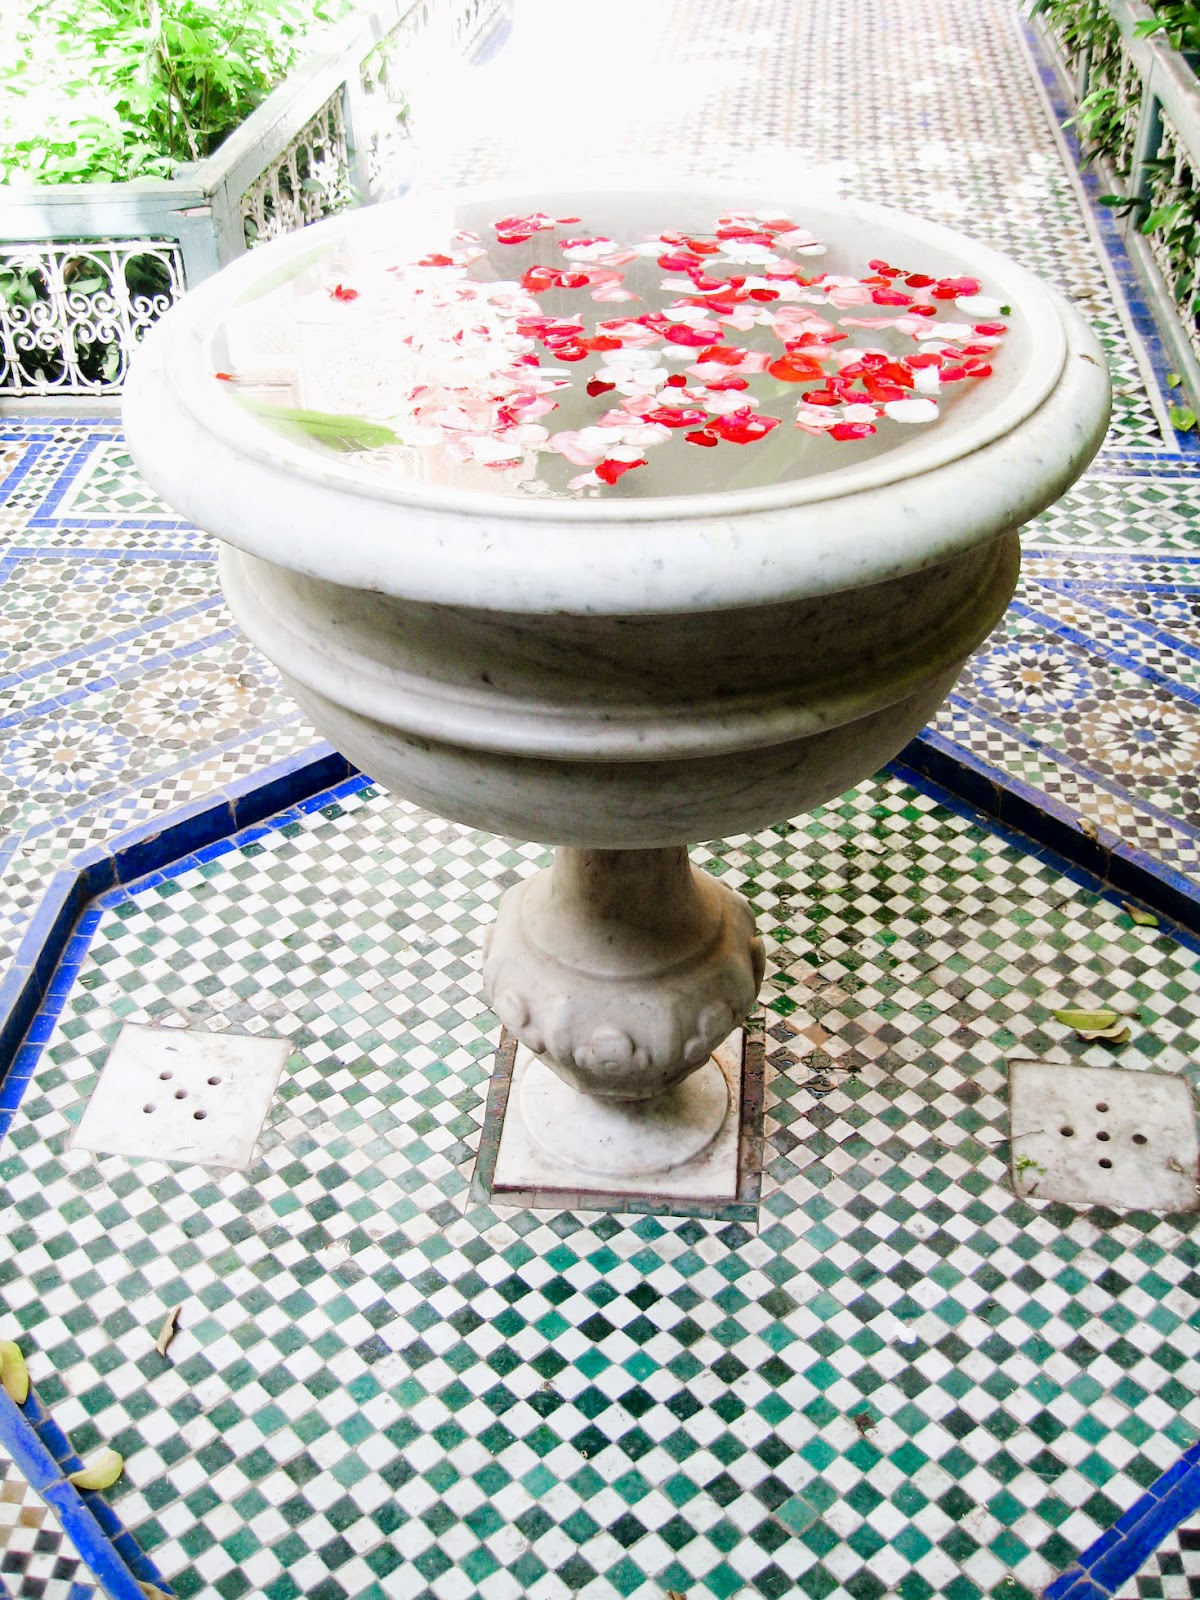 Top Marrakech tourist attractions: Rose petals in traditional moroccan decor at Bahia Palace